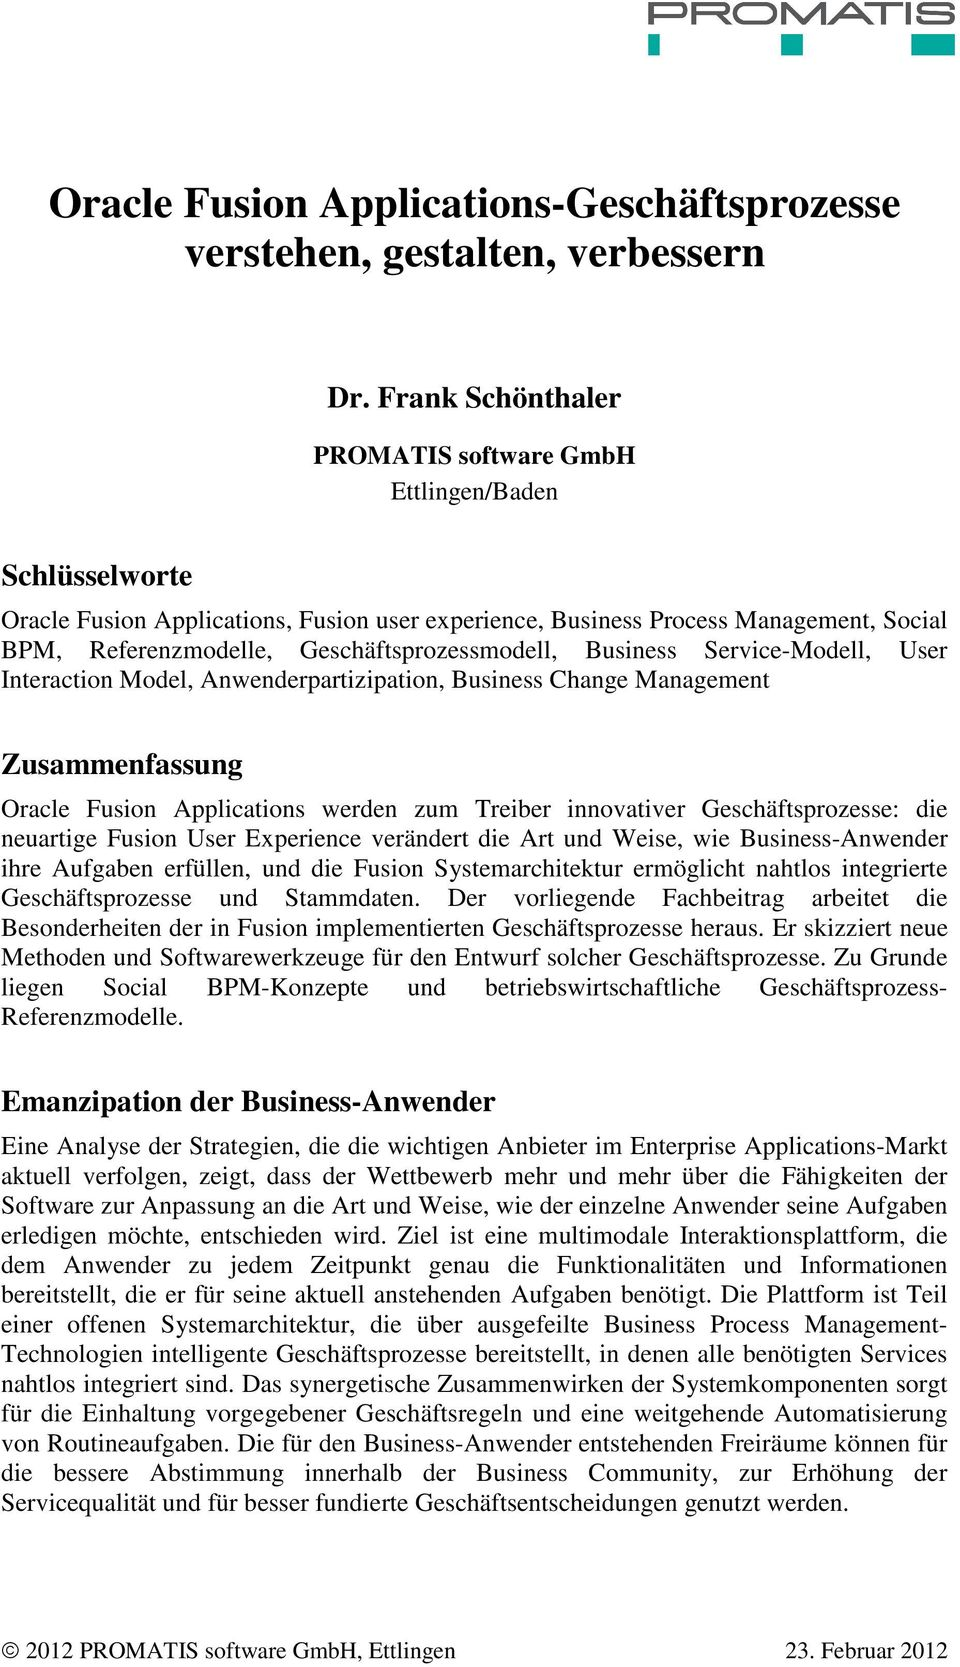 Geschäftsprozessmodell, Business Service-Modell, User Interaction Model, Anwenderpartizipation, Business Change Management Zusammenfassung Oracle Fusion Applications werden zum Treiber innovativer